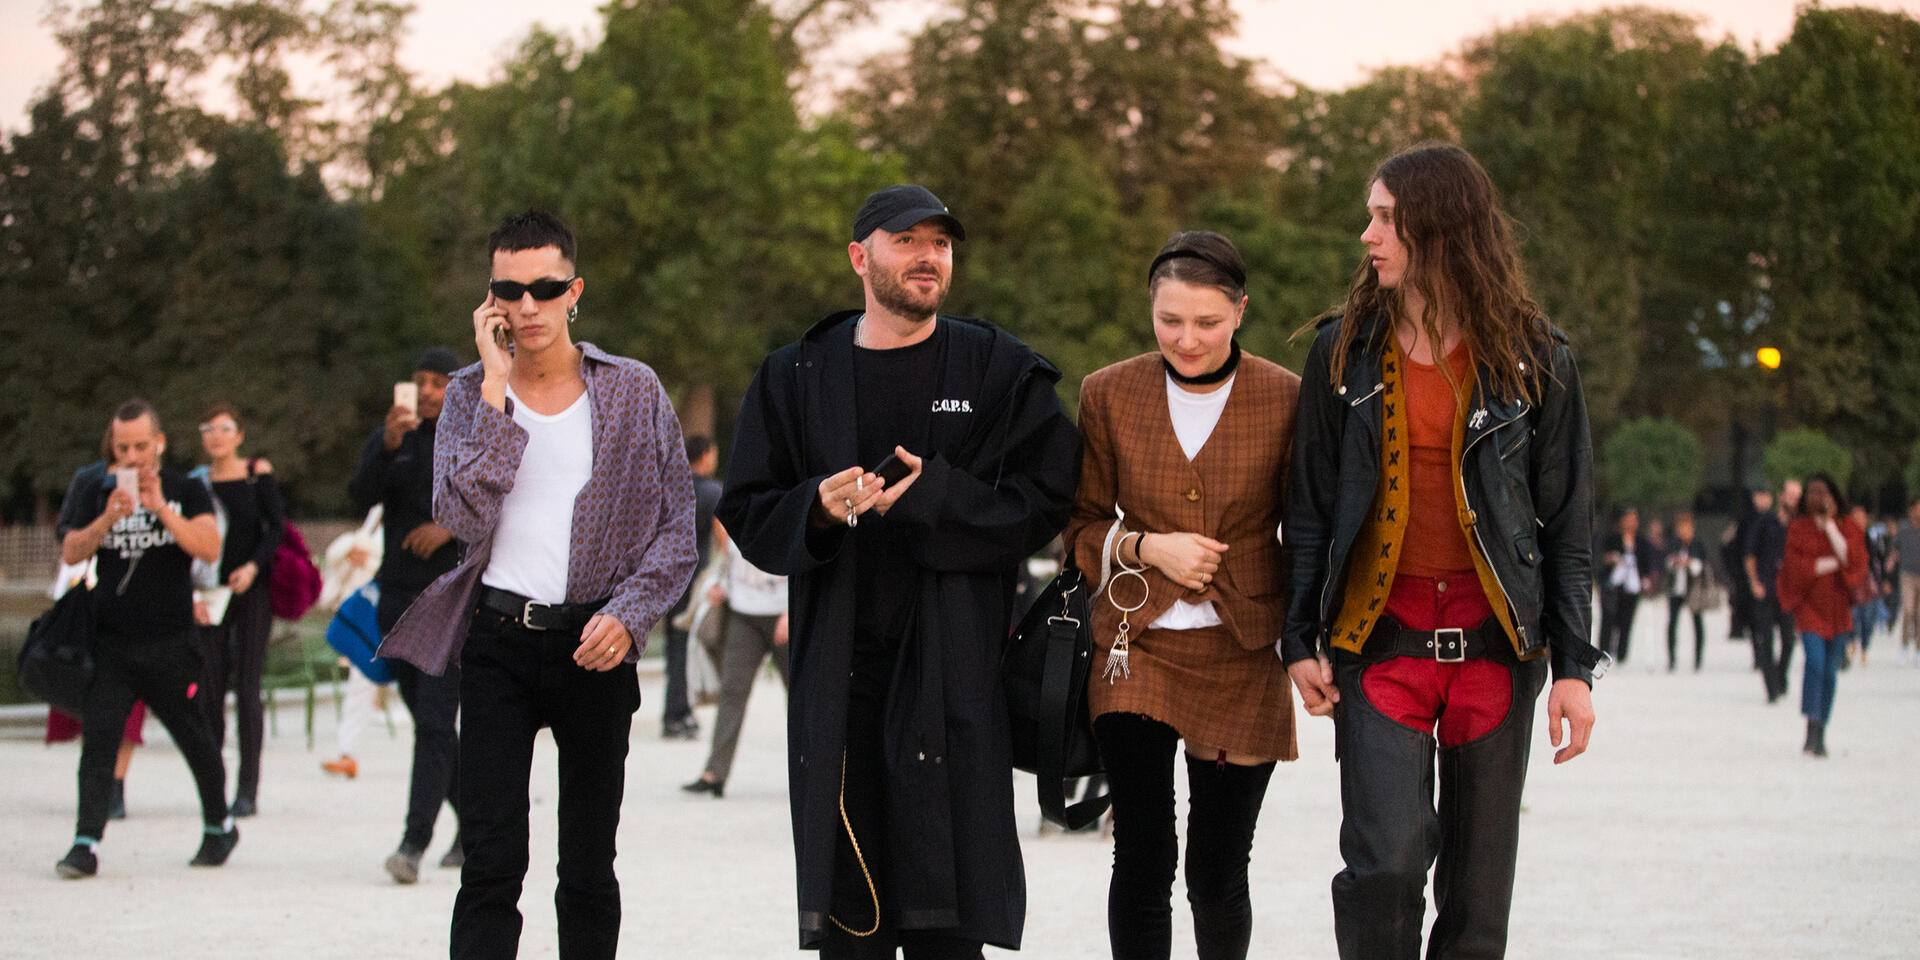 PARIS, FRANCE - SEPTEMBER 27:  Demna Gvasalia, Vetements designer, Lotta Volkova, stylist, after Jacquemus at the Tuileries on September 27, 2016 in Paris, France.  (Photo by Melodie Jeng/Getty Images)